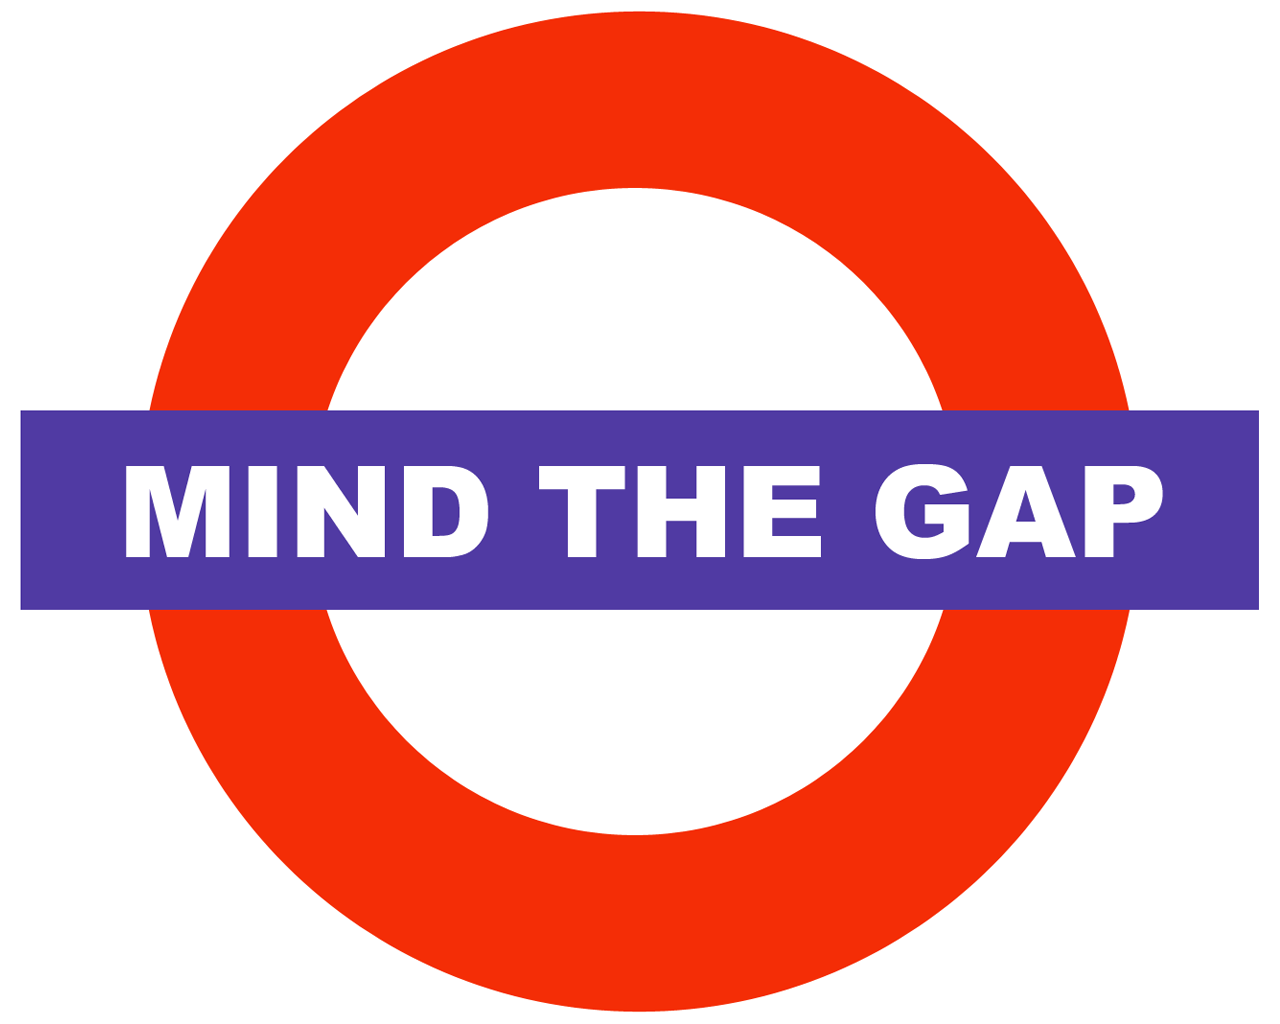 Mind the (social aspiration) gap – Russell Webster